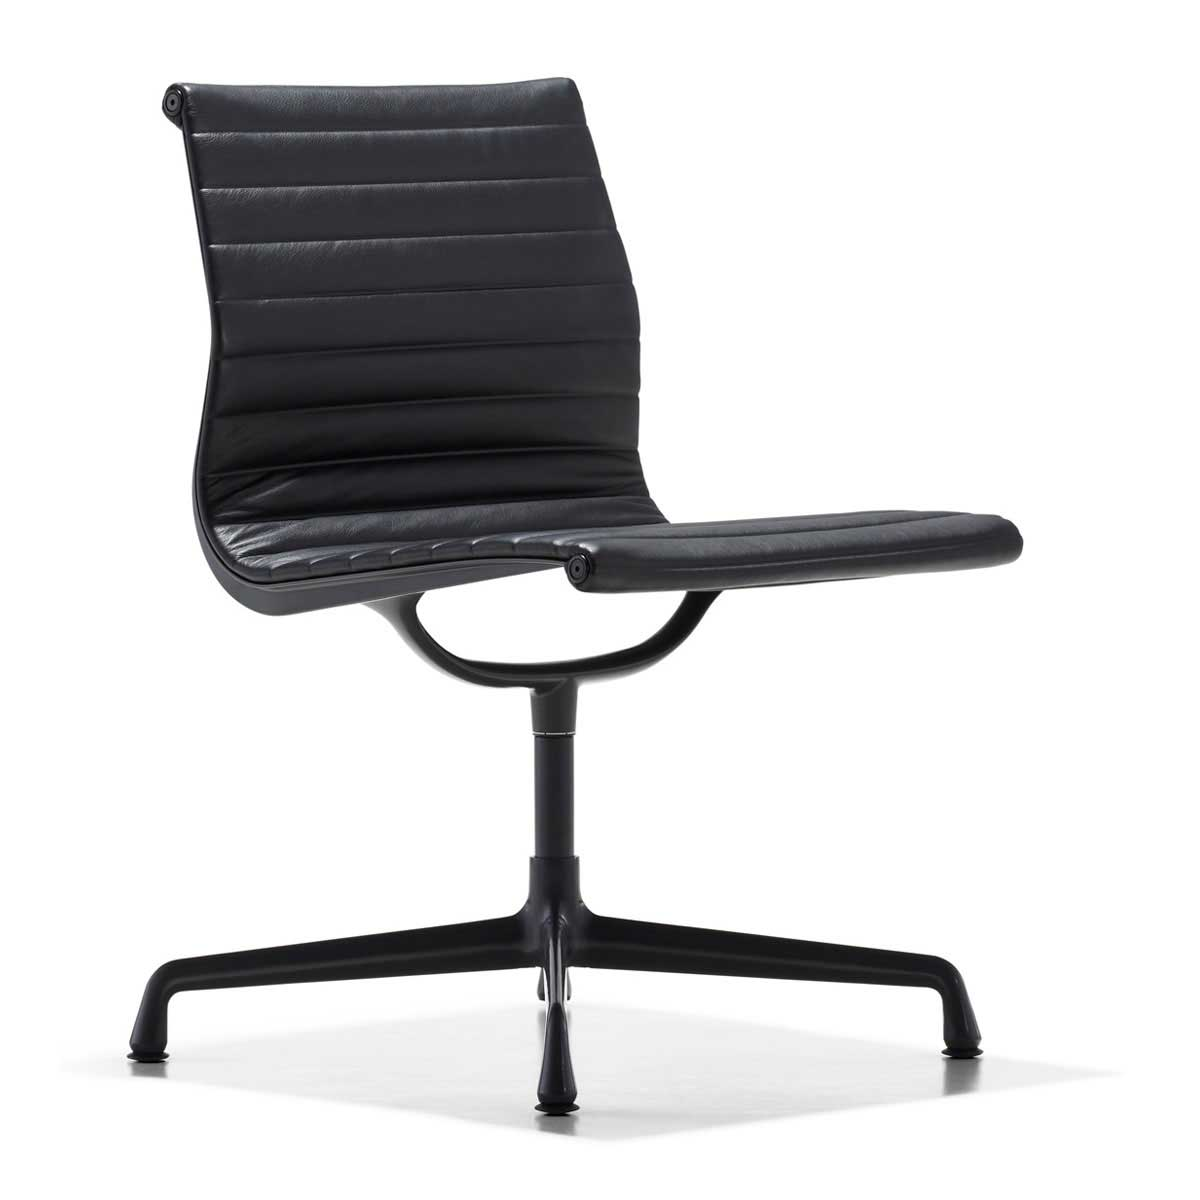 Eames aluminum side chair in black